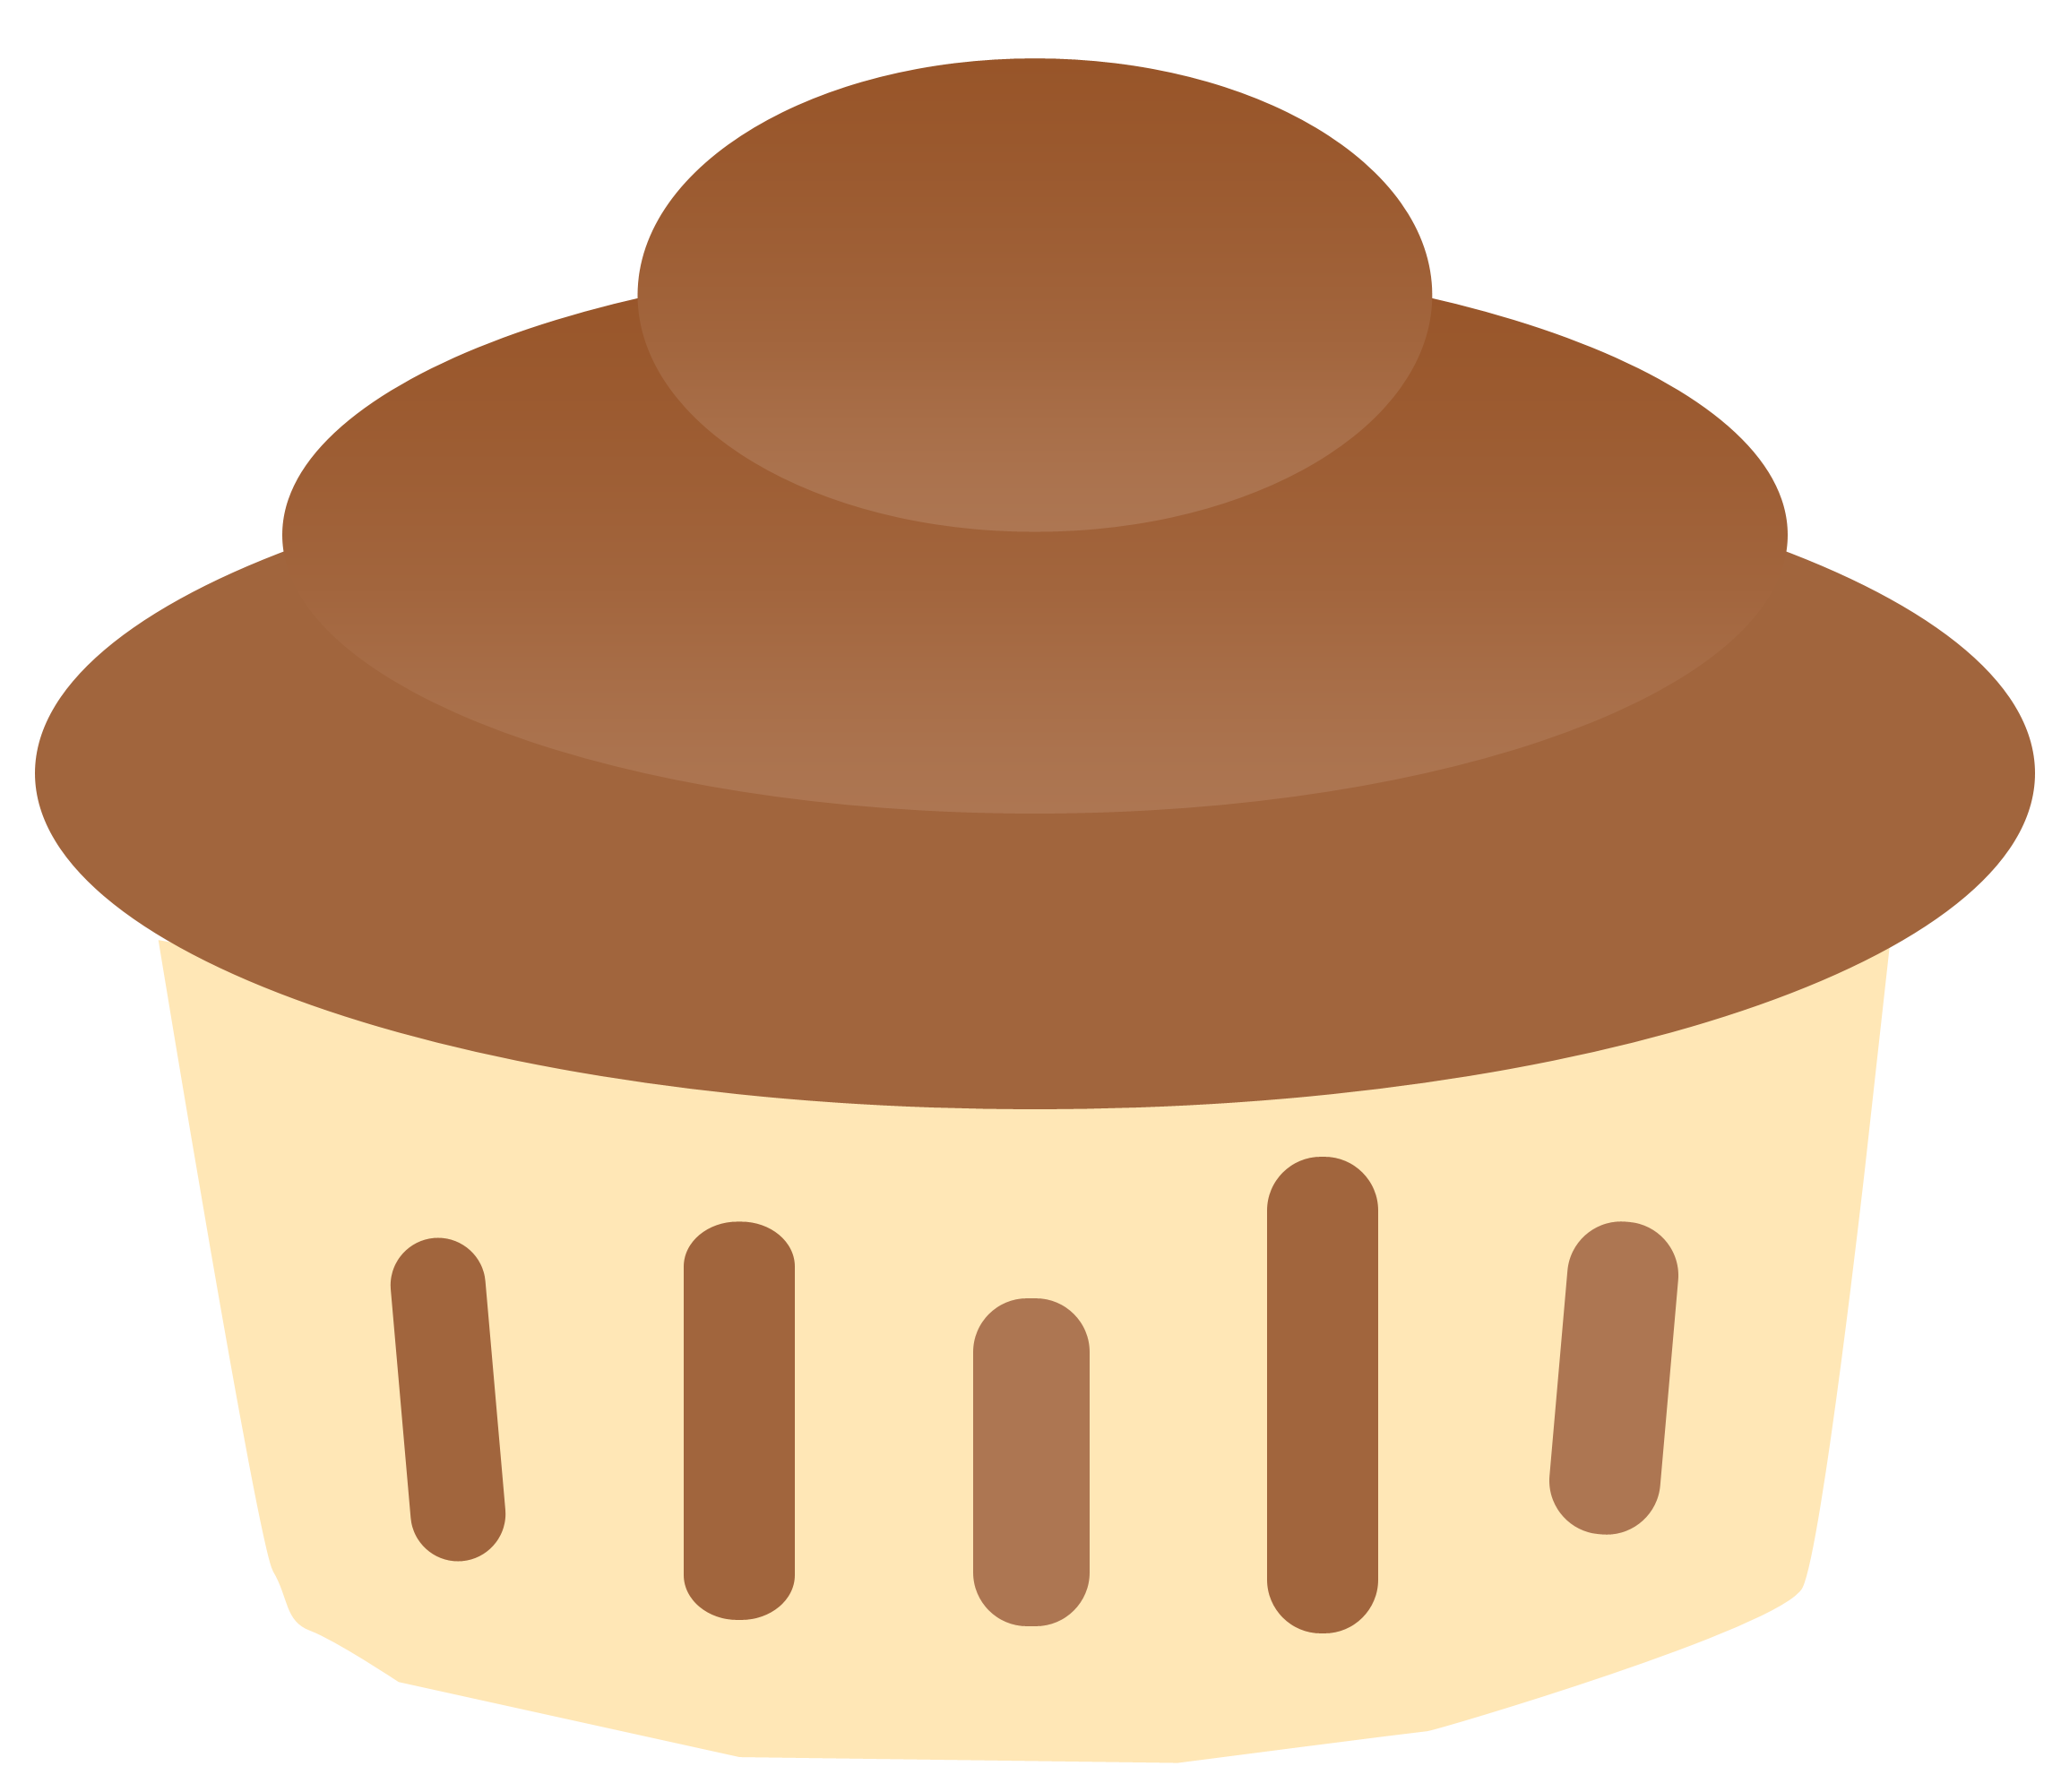 png library download Brownie clipart plain. Cupcake pencil and in.